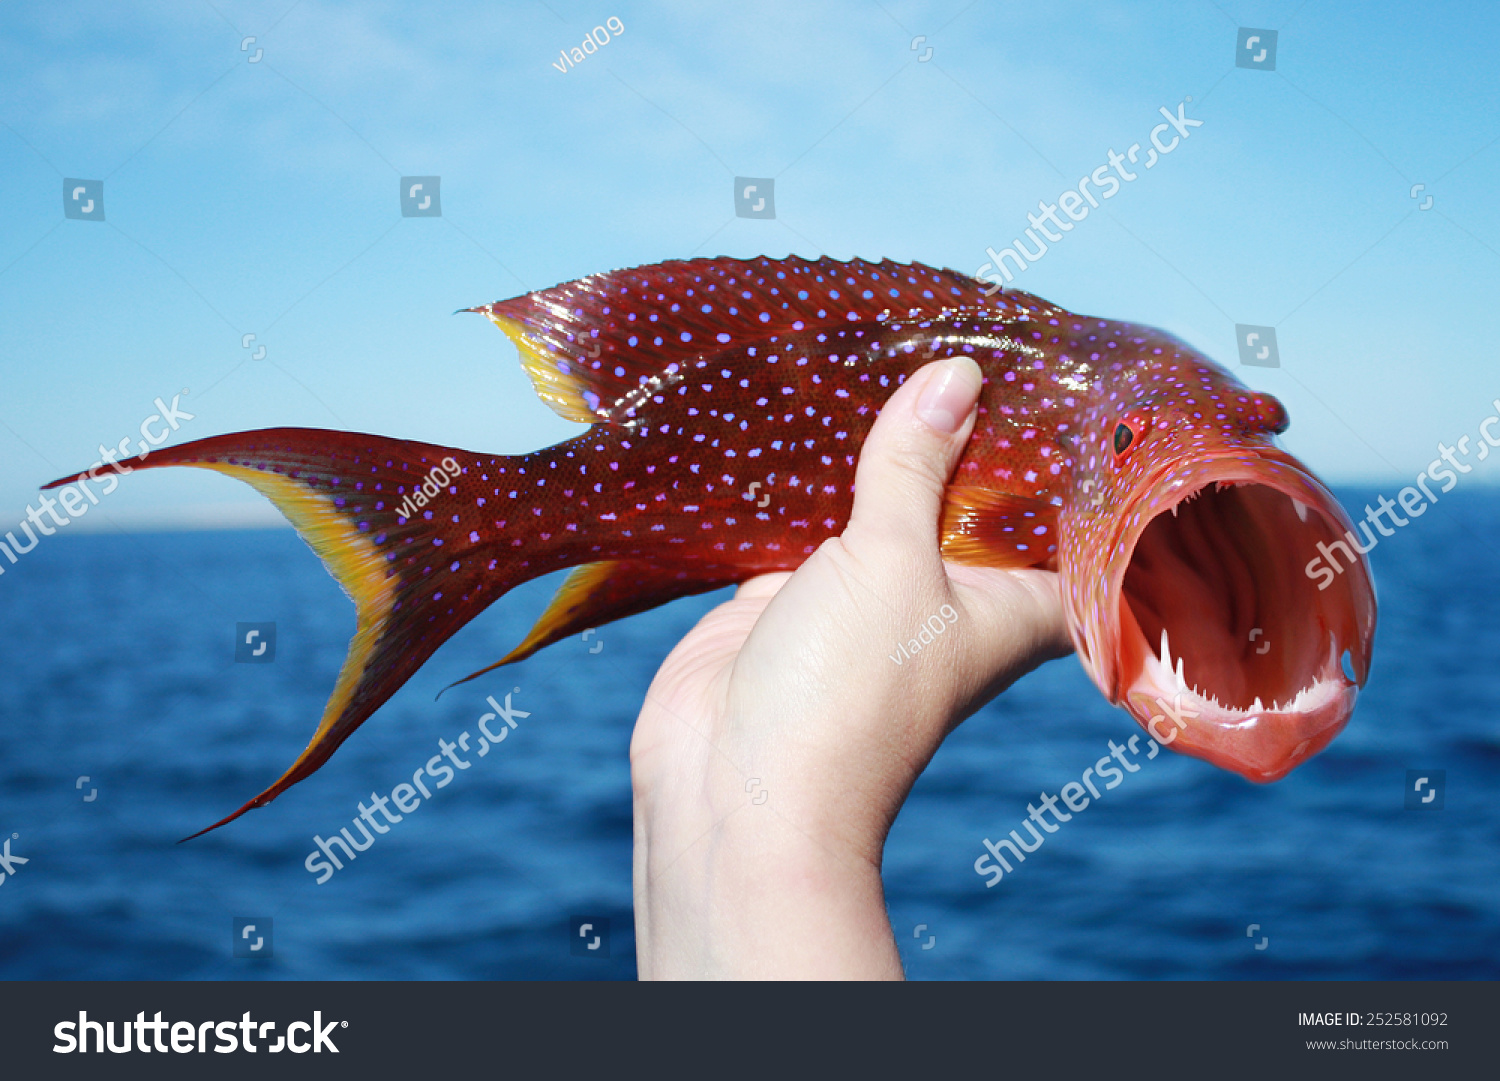 Terrible Fish Stock Photo (Royalty Free) 252581092 - Shutterstock